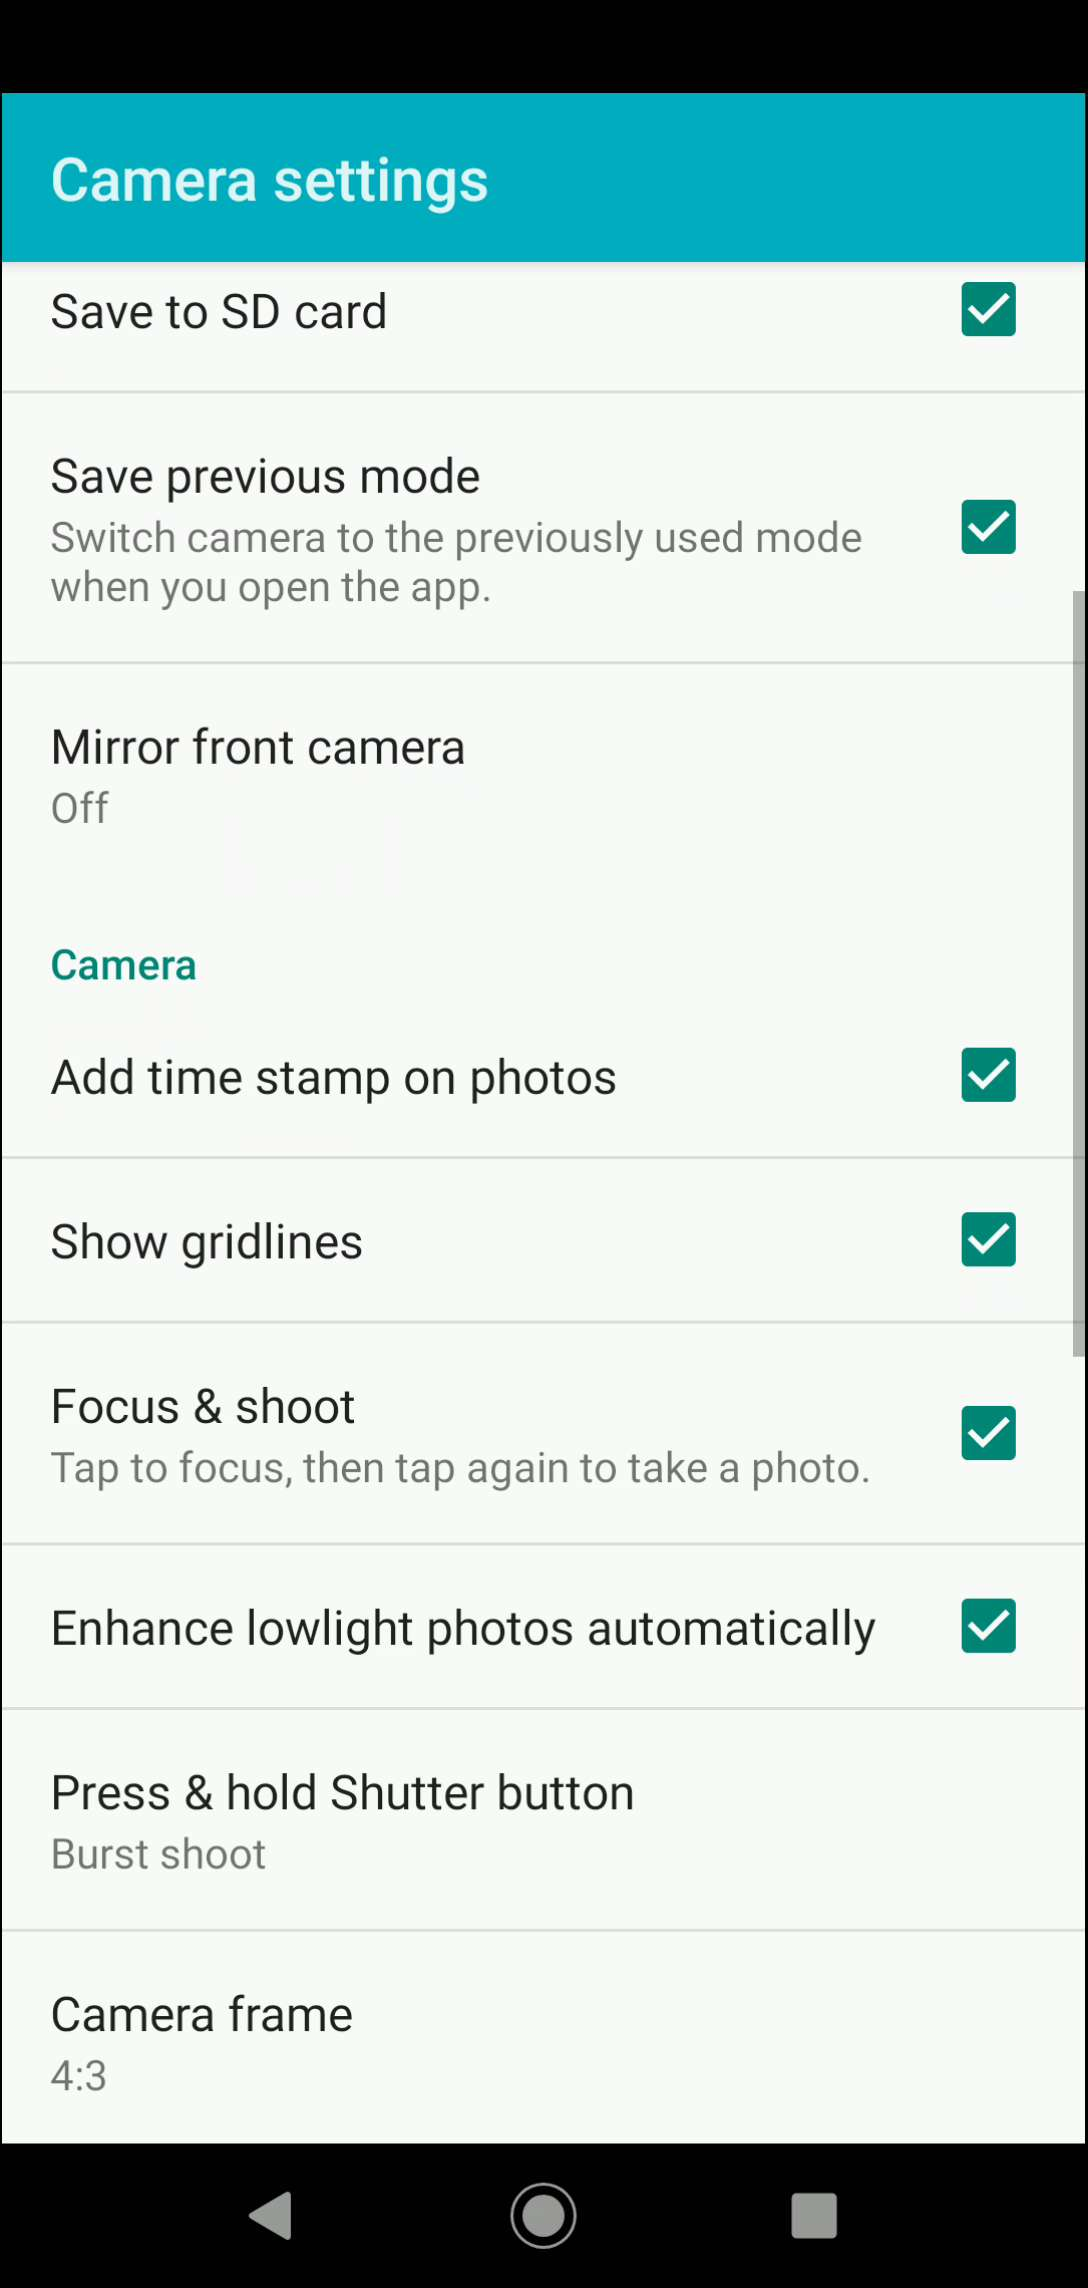 Step 4: Activate or deactivate Enhance low light photos automatically